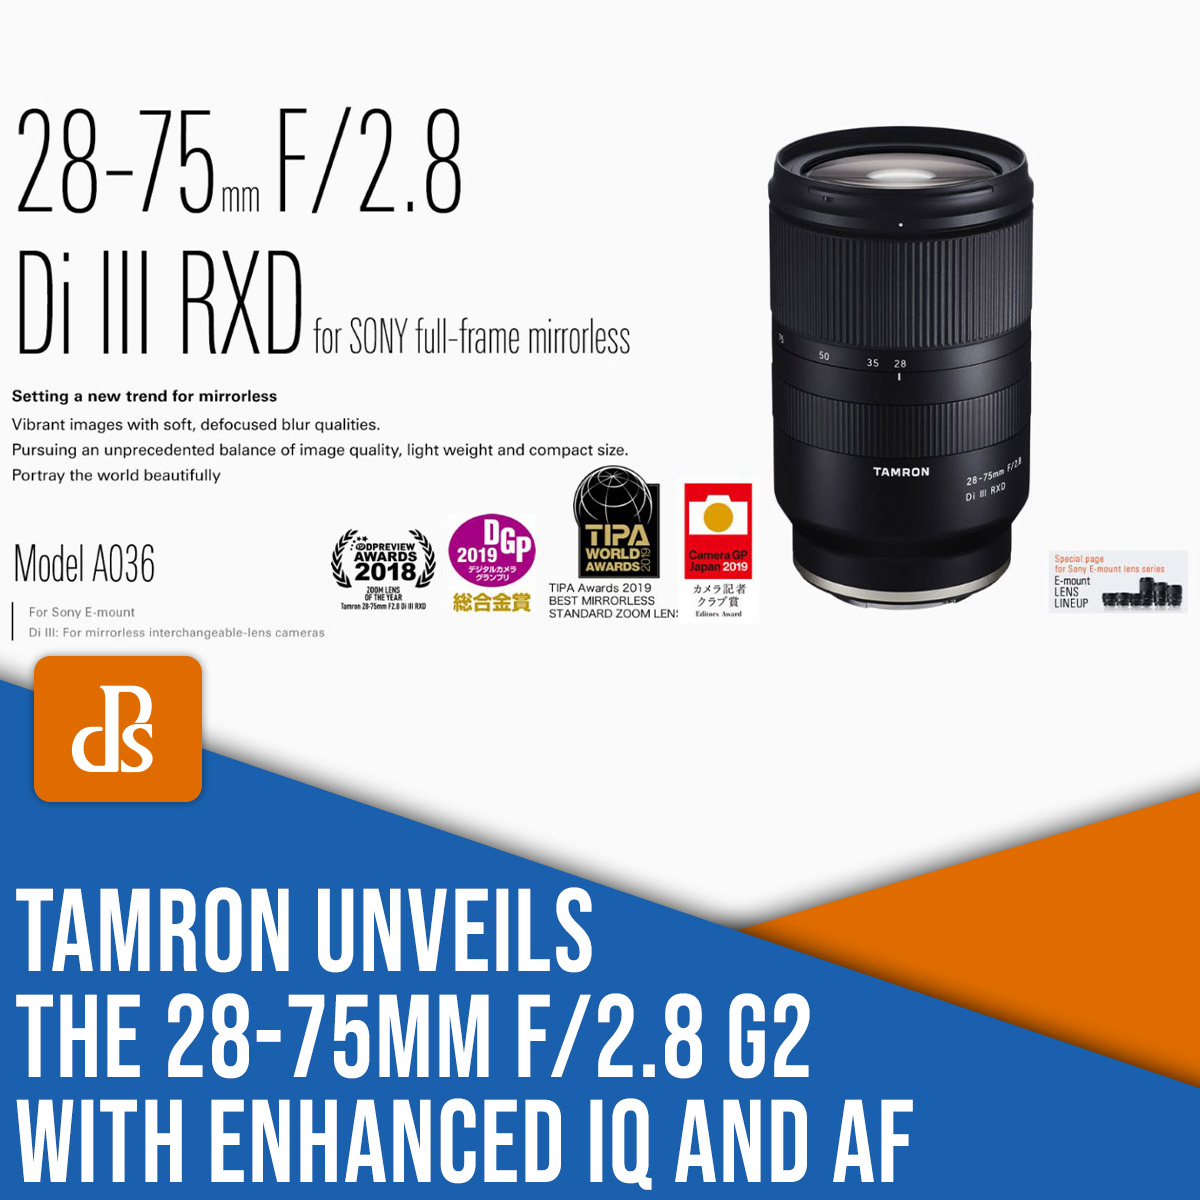 Tamron unveils the 28-75mm f/2.8 G2 with enhanced IQ and AF